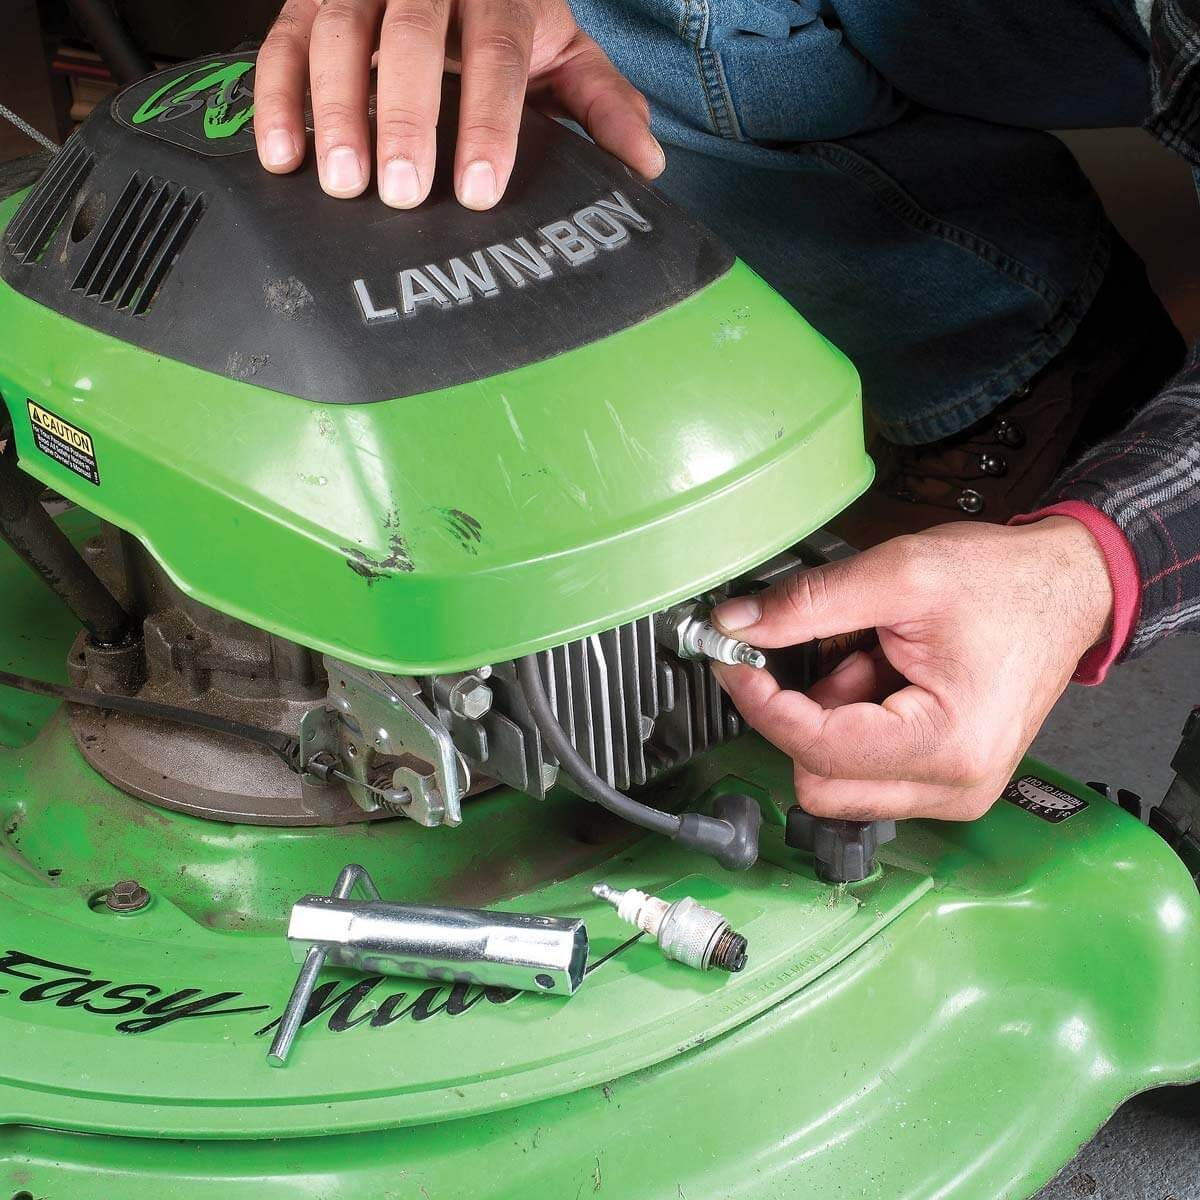 Tune Up the Lawn Mower